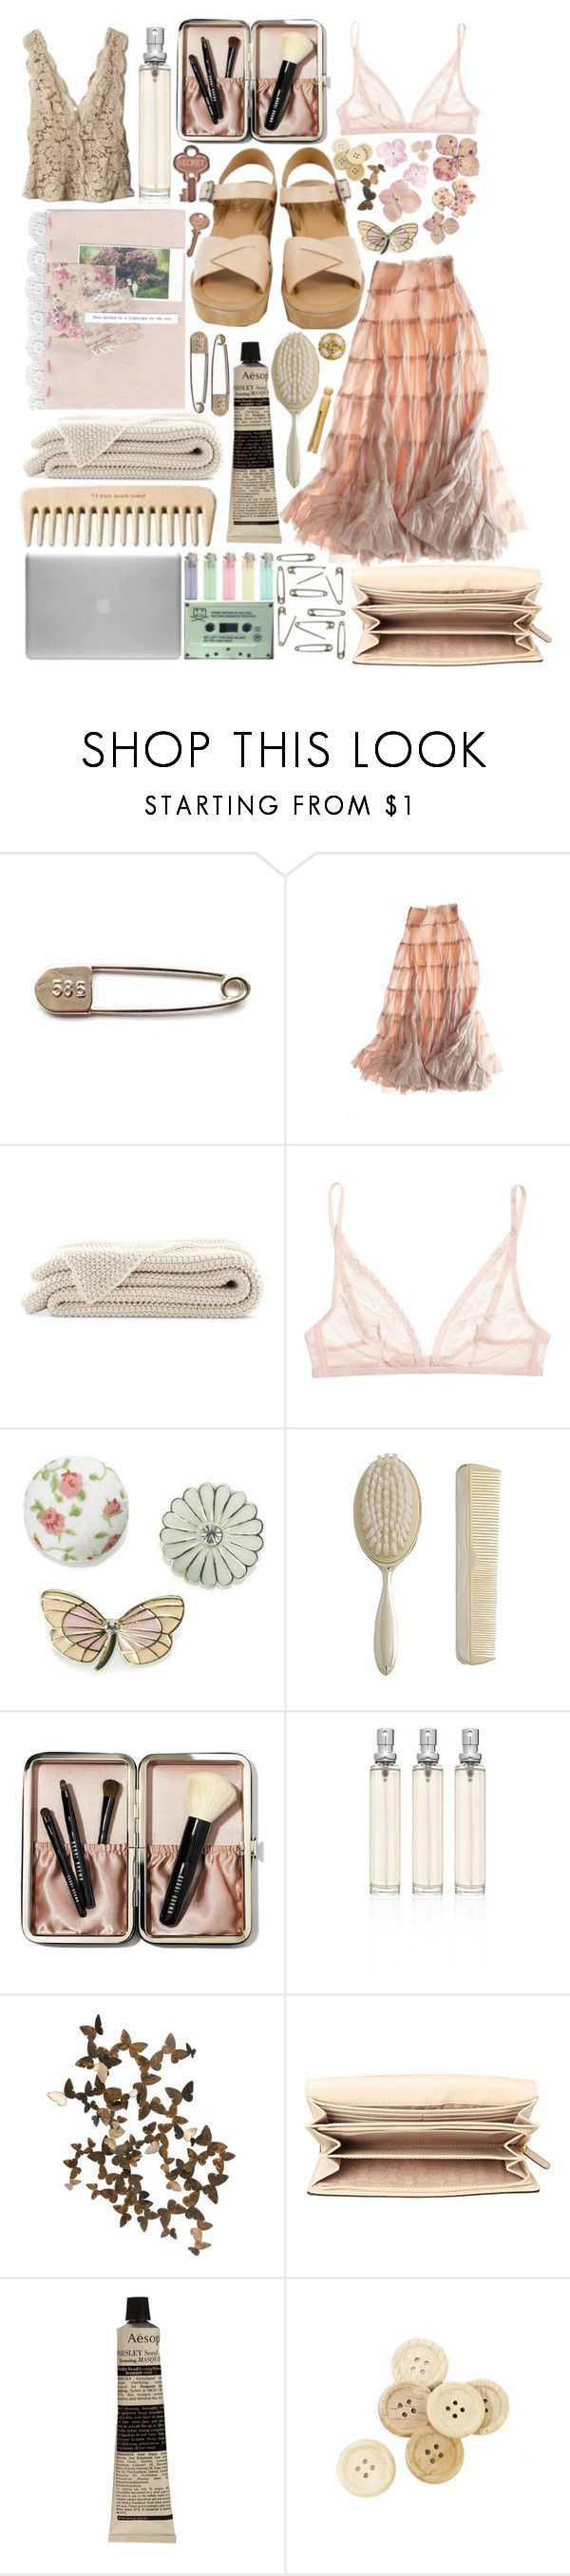 """Would you stay if she promised you heaven?"" by hougach ❤ liked on Polyvore featuring Kork-Ease, Calypso St. Barth, STELLA McCARTNEY, Calvin Klein Underwear, Monsoon, Zara, Bobbi Brown Cosmetics, Alchemy Collection, MICHAEL Michael Kors and Aesop"